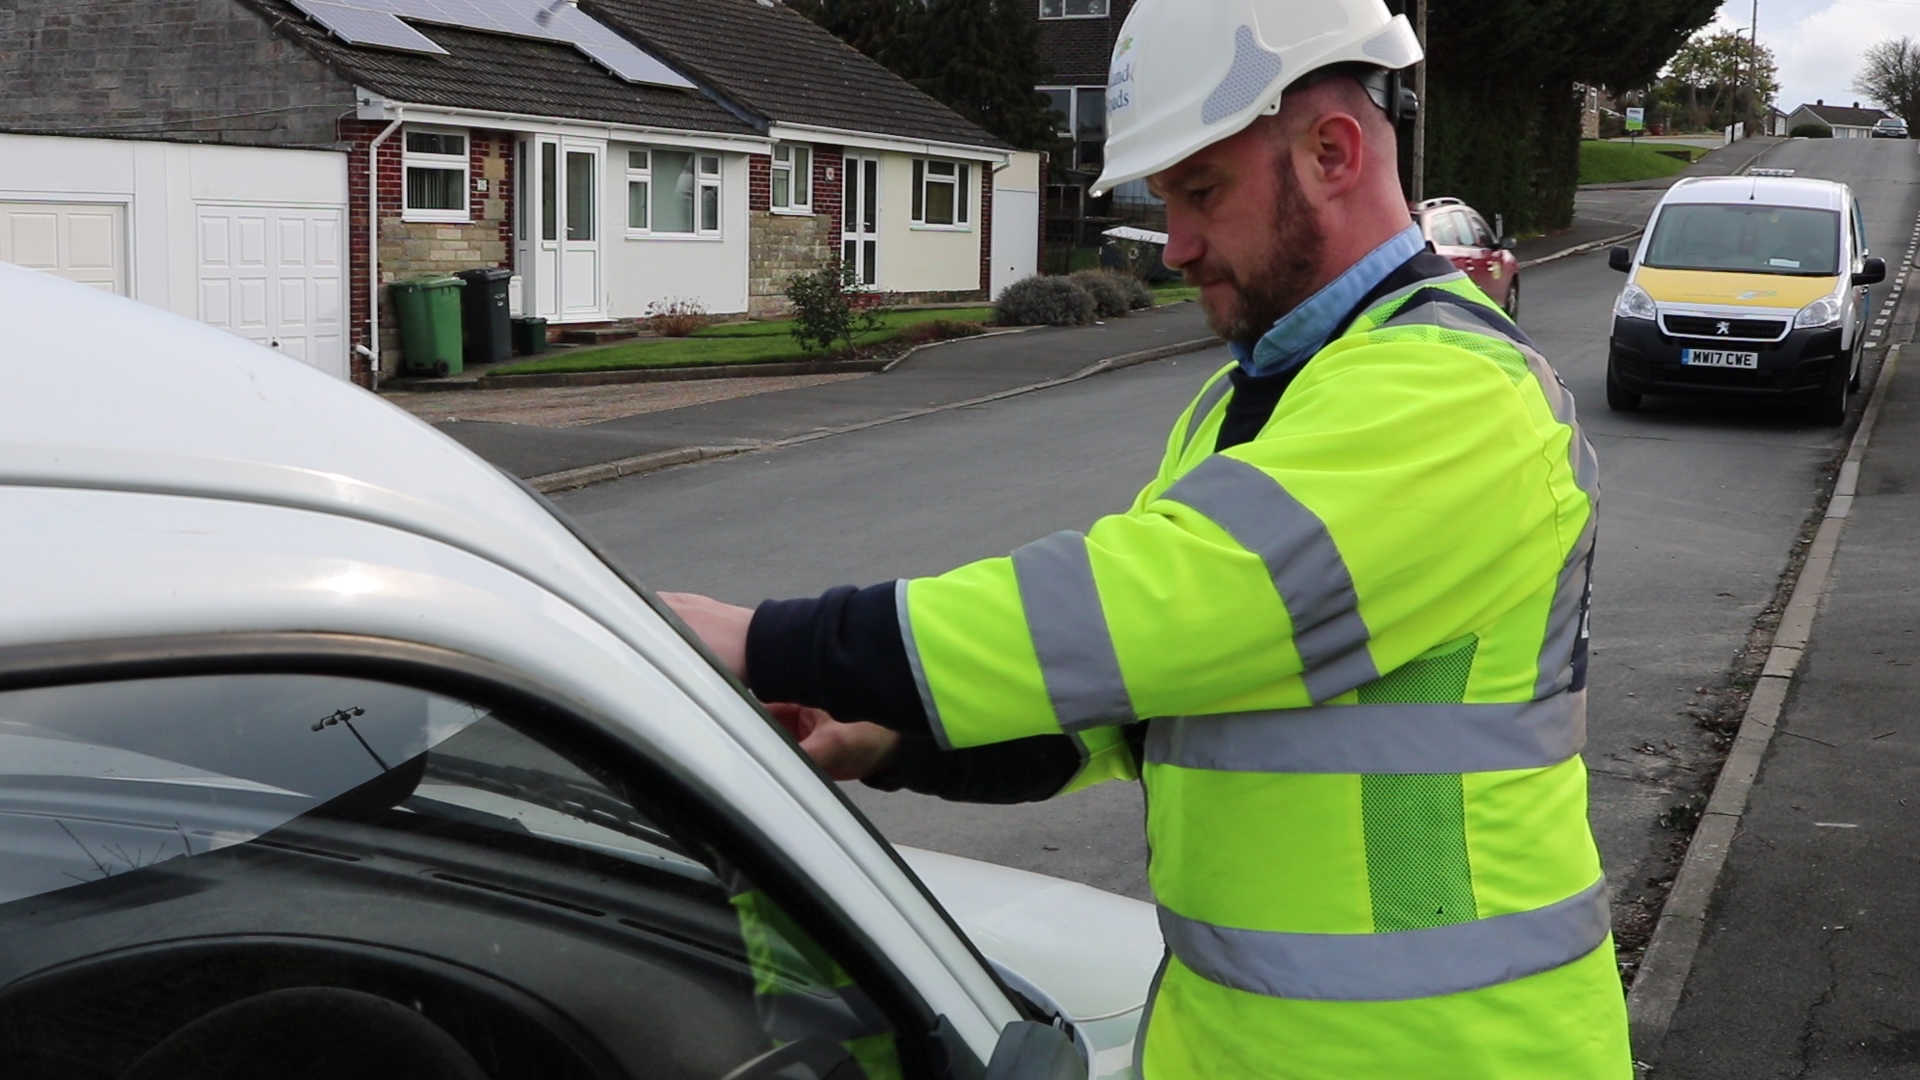 Photo showing Island Roads District Steward affixing a notice to an abandoned vehicle left in the street